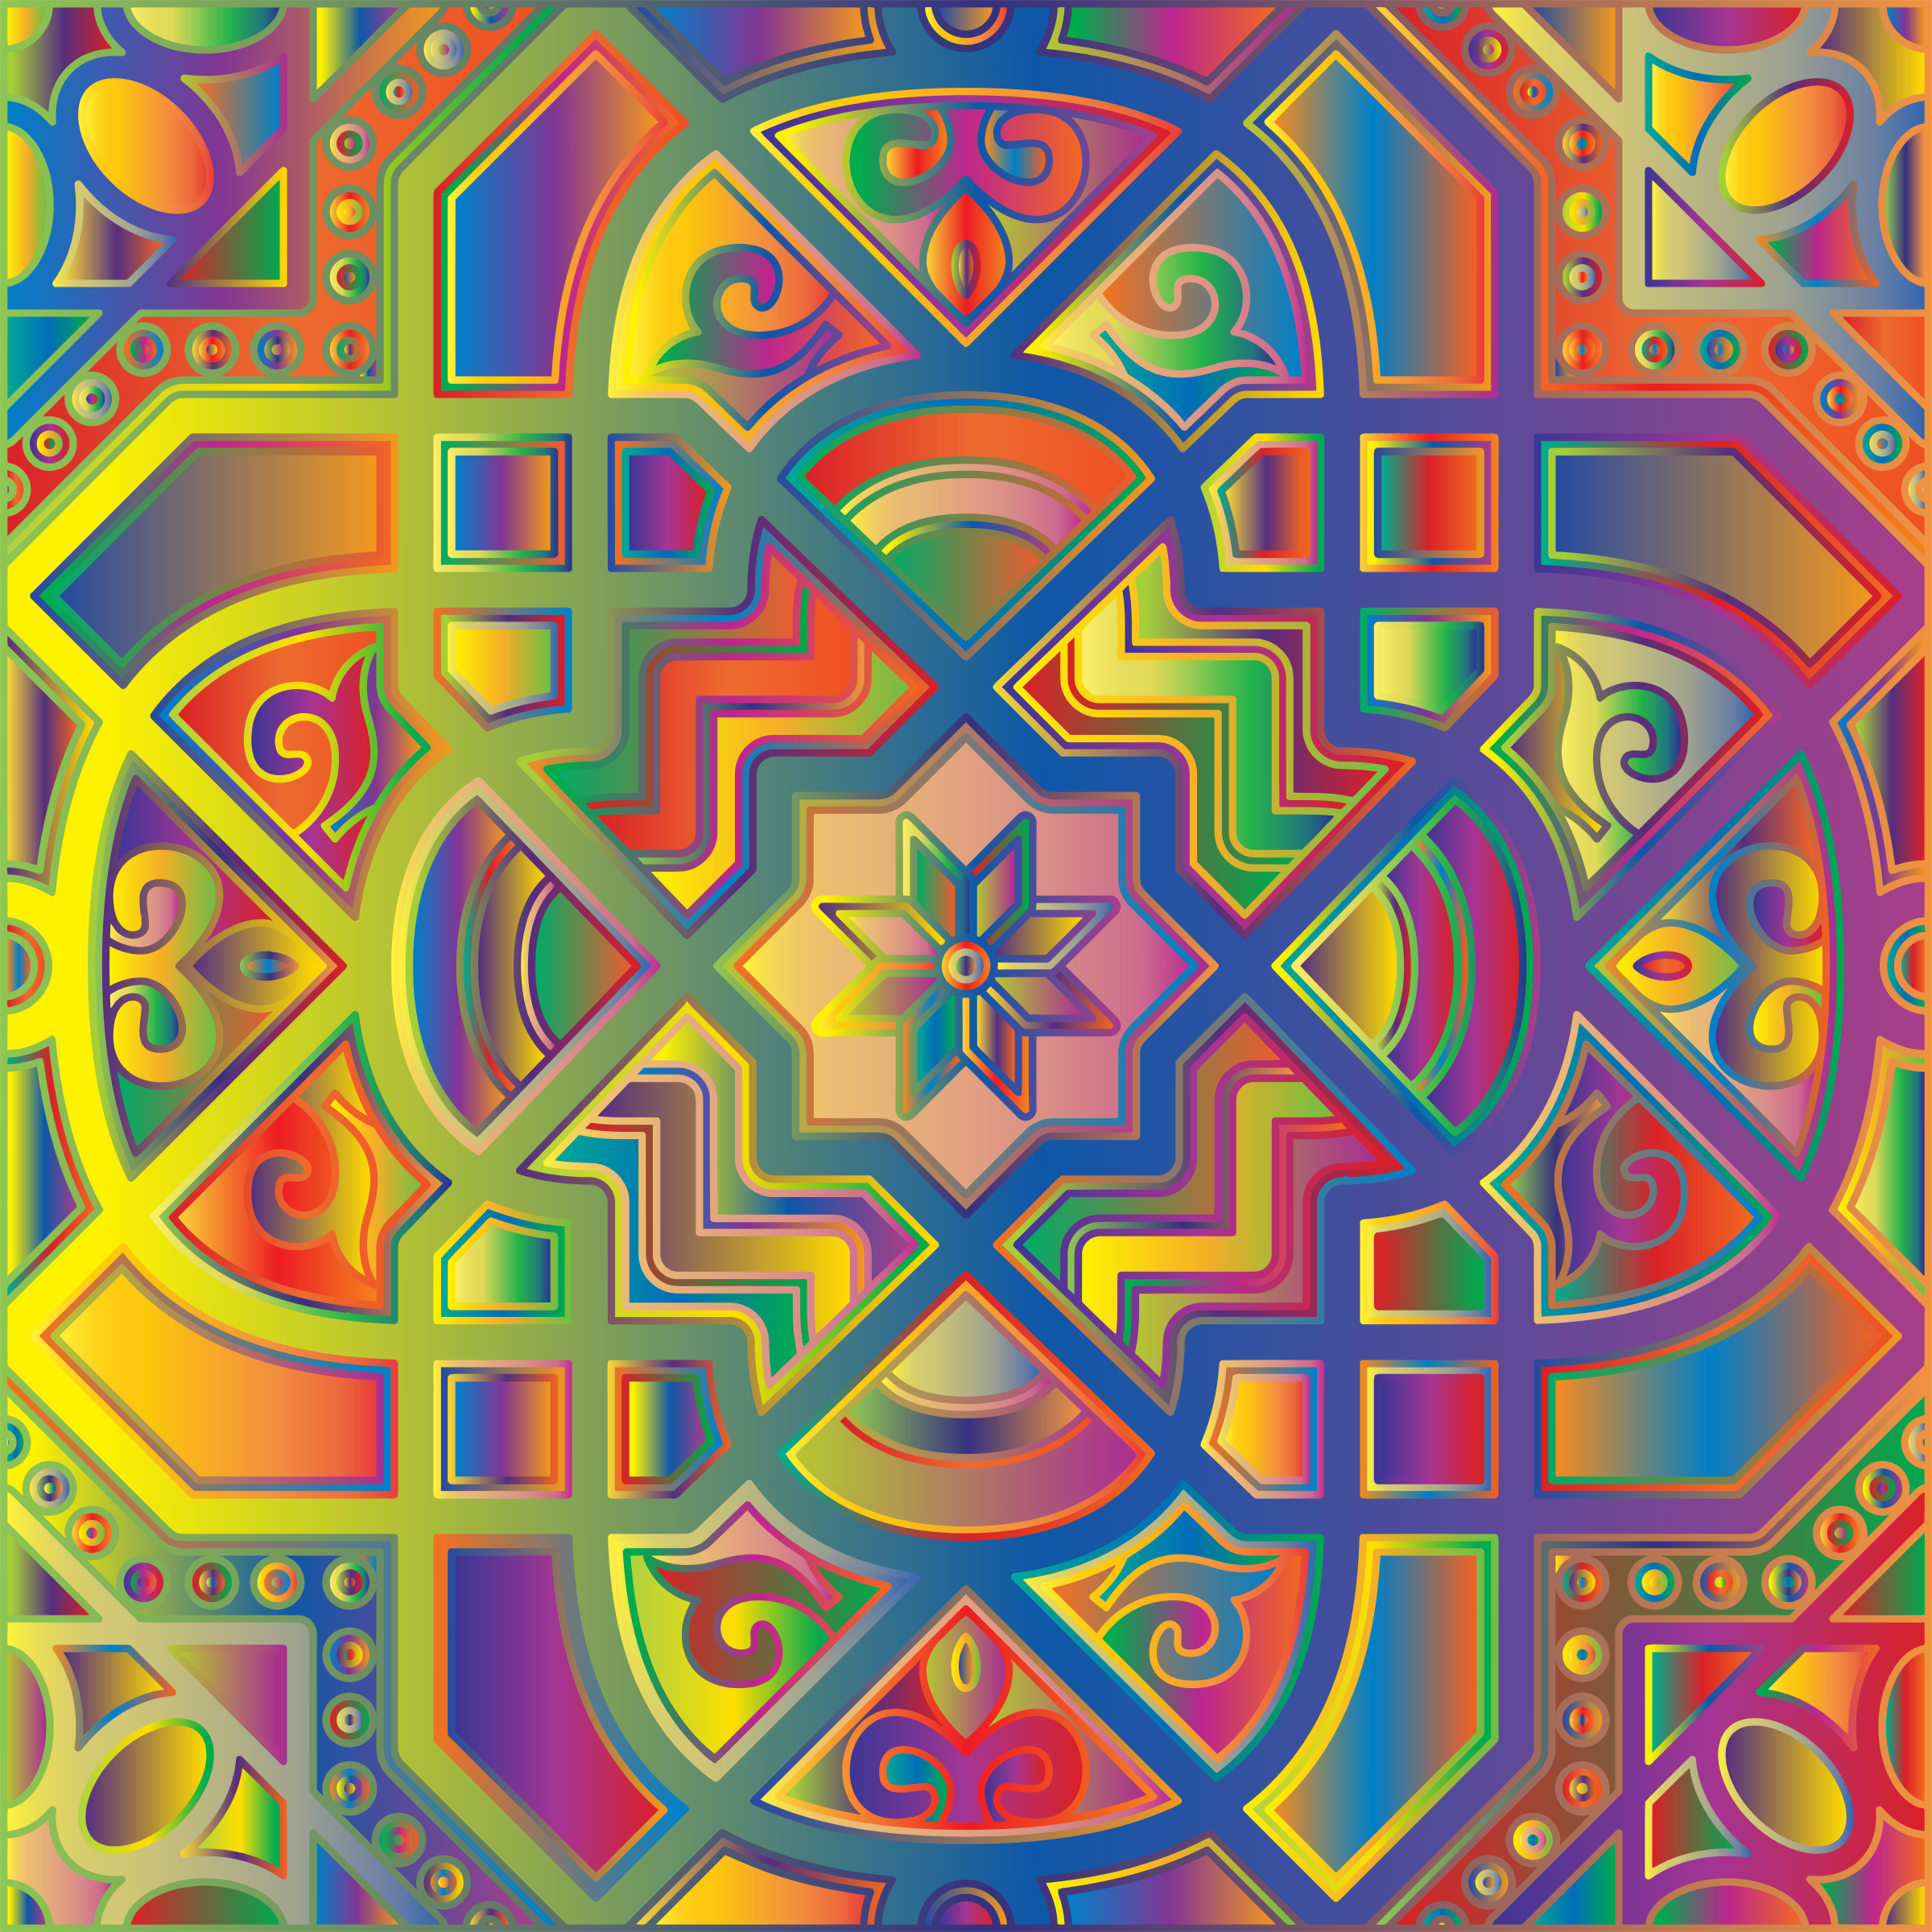 Chromatic Geometric Line Art 5 by GDJ